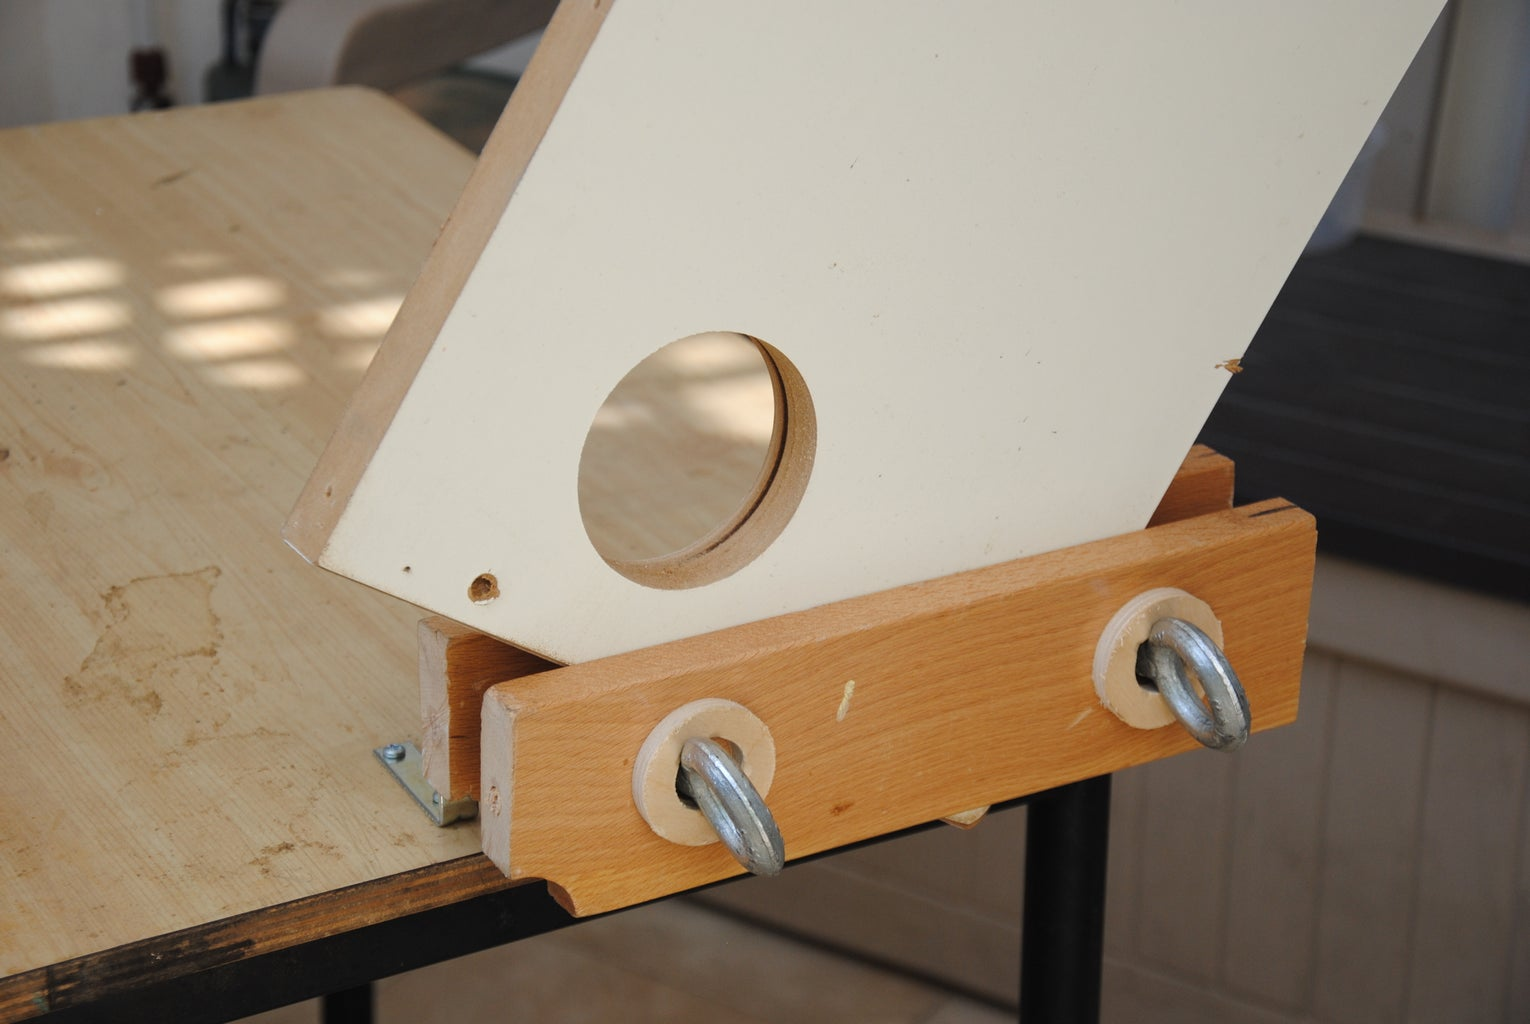 Use Your Homemade Twin-Screw Moxon Vise!